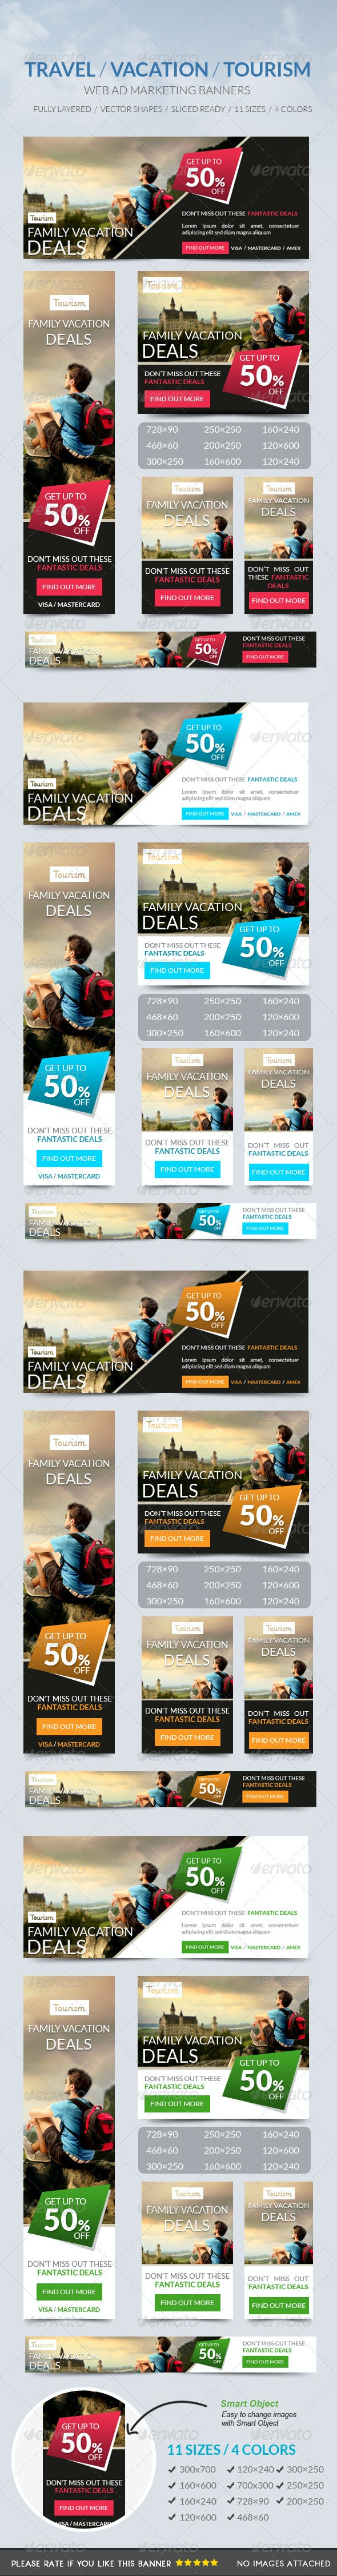 Travel Vacation Tourism Banner - Banners & Ads Web Elements